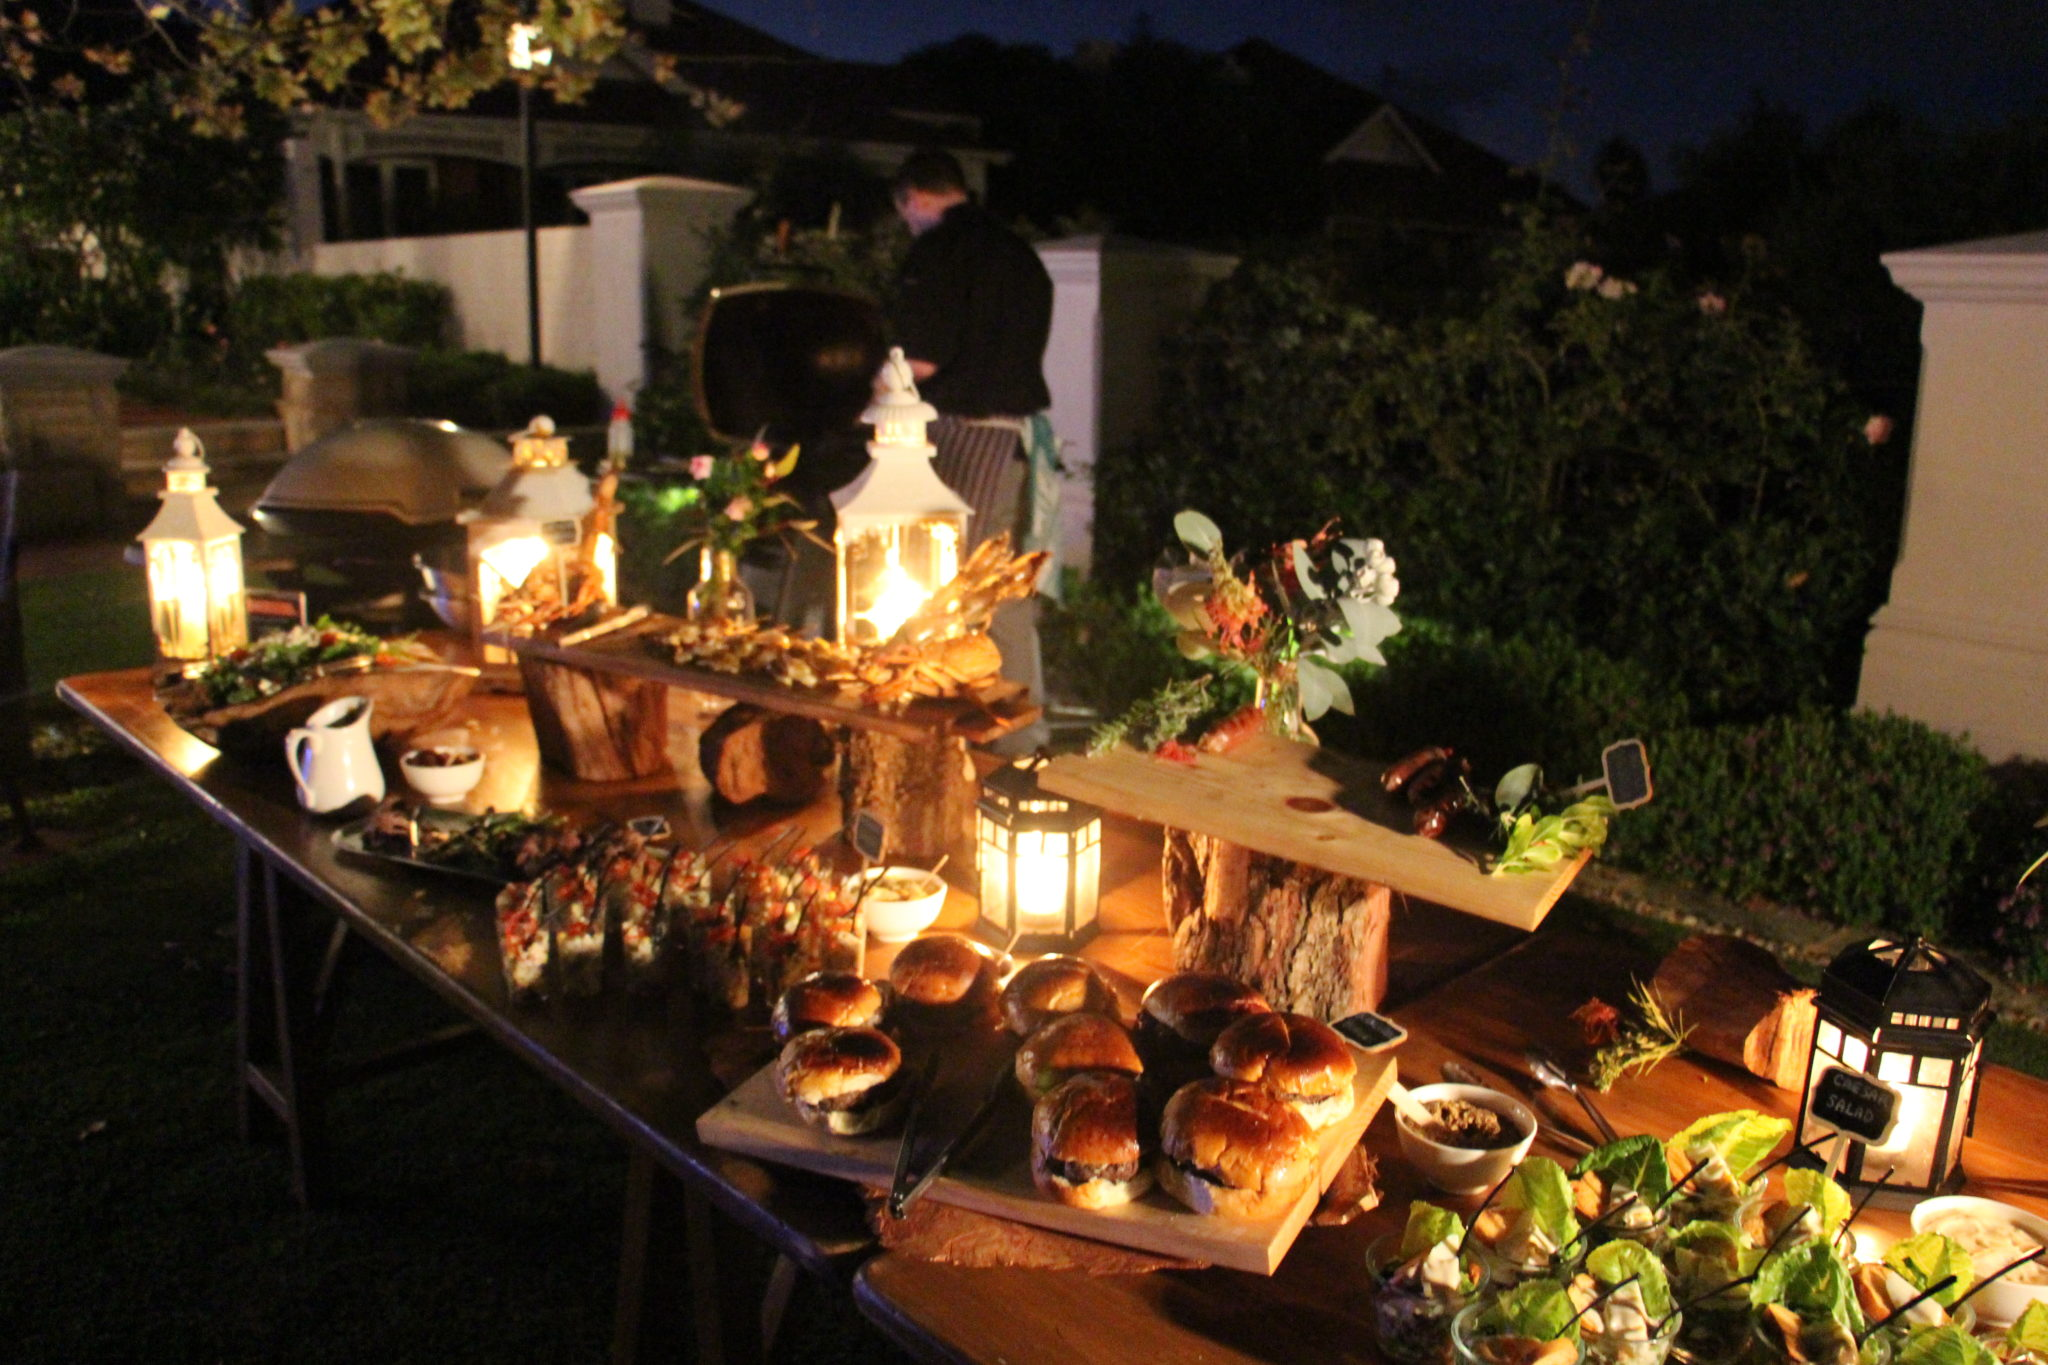 dinner party dating perth Welcome to the first international outpost of bali's original sunset destination positioned on the striking swan river in the beautiful city of perth spread across.